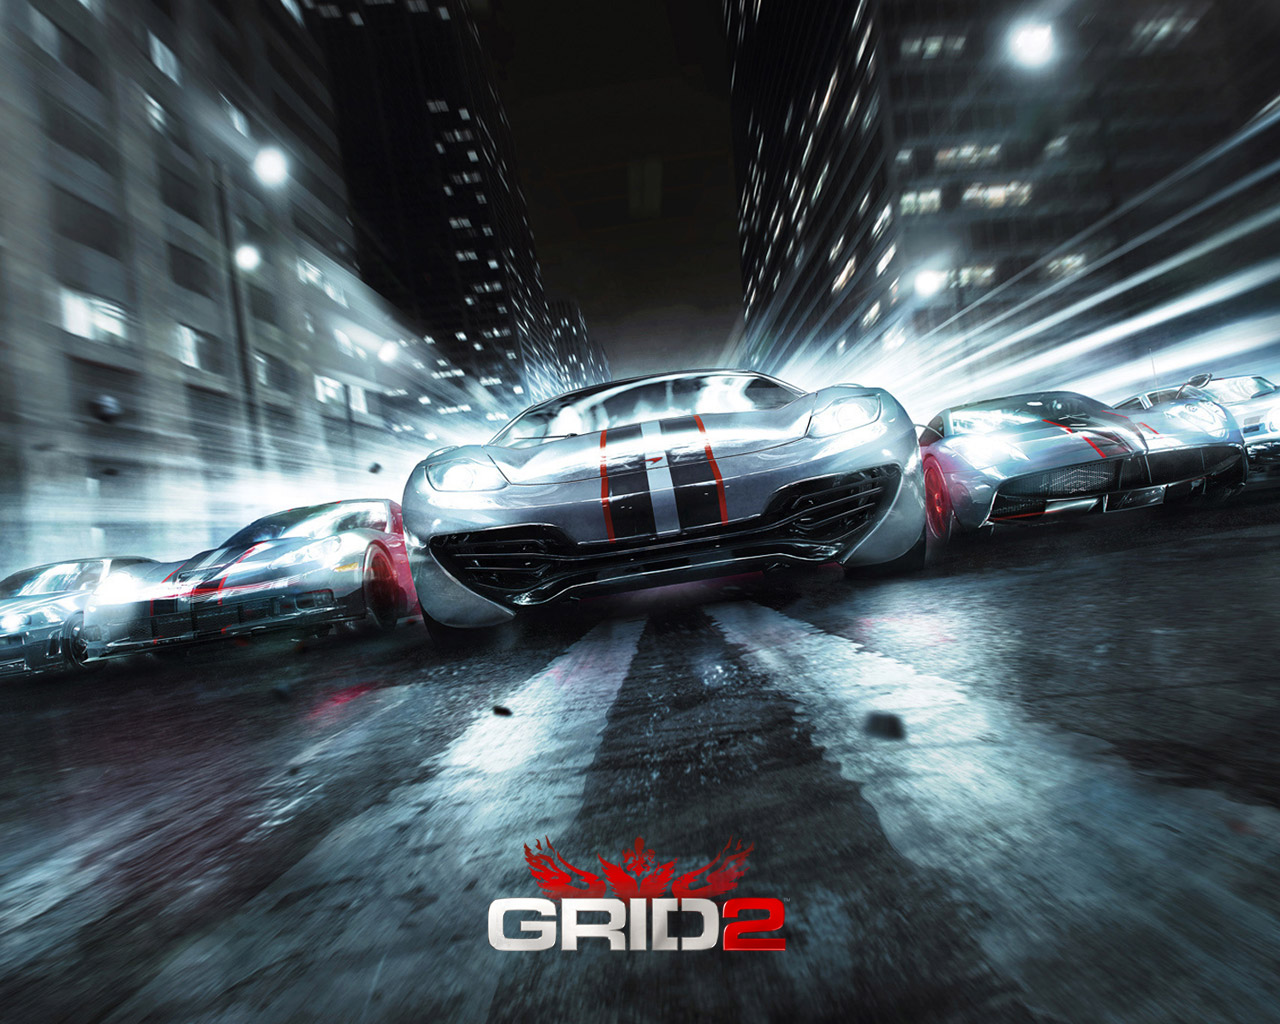 GRID 2 Wallpaper in 1280x1024